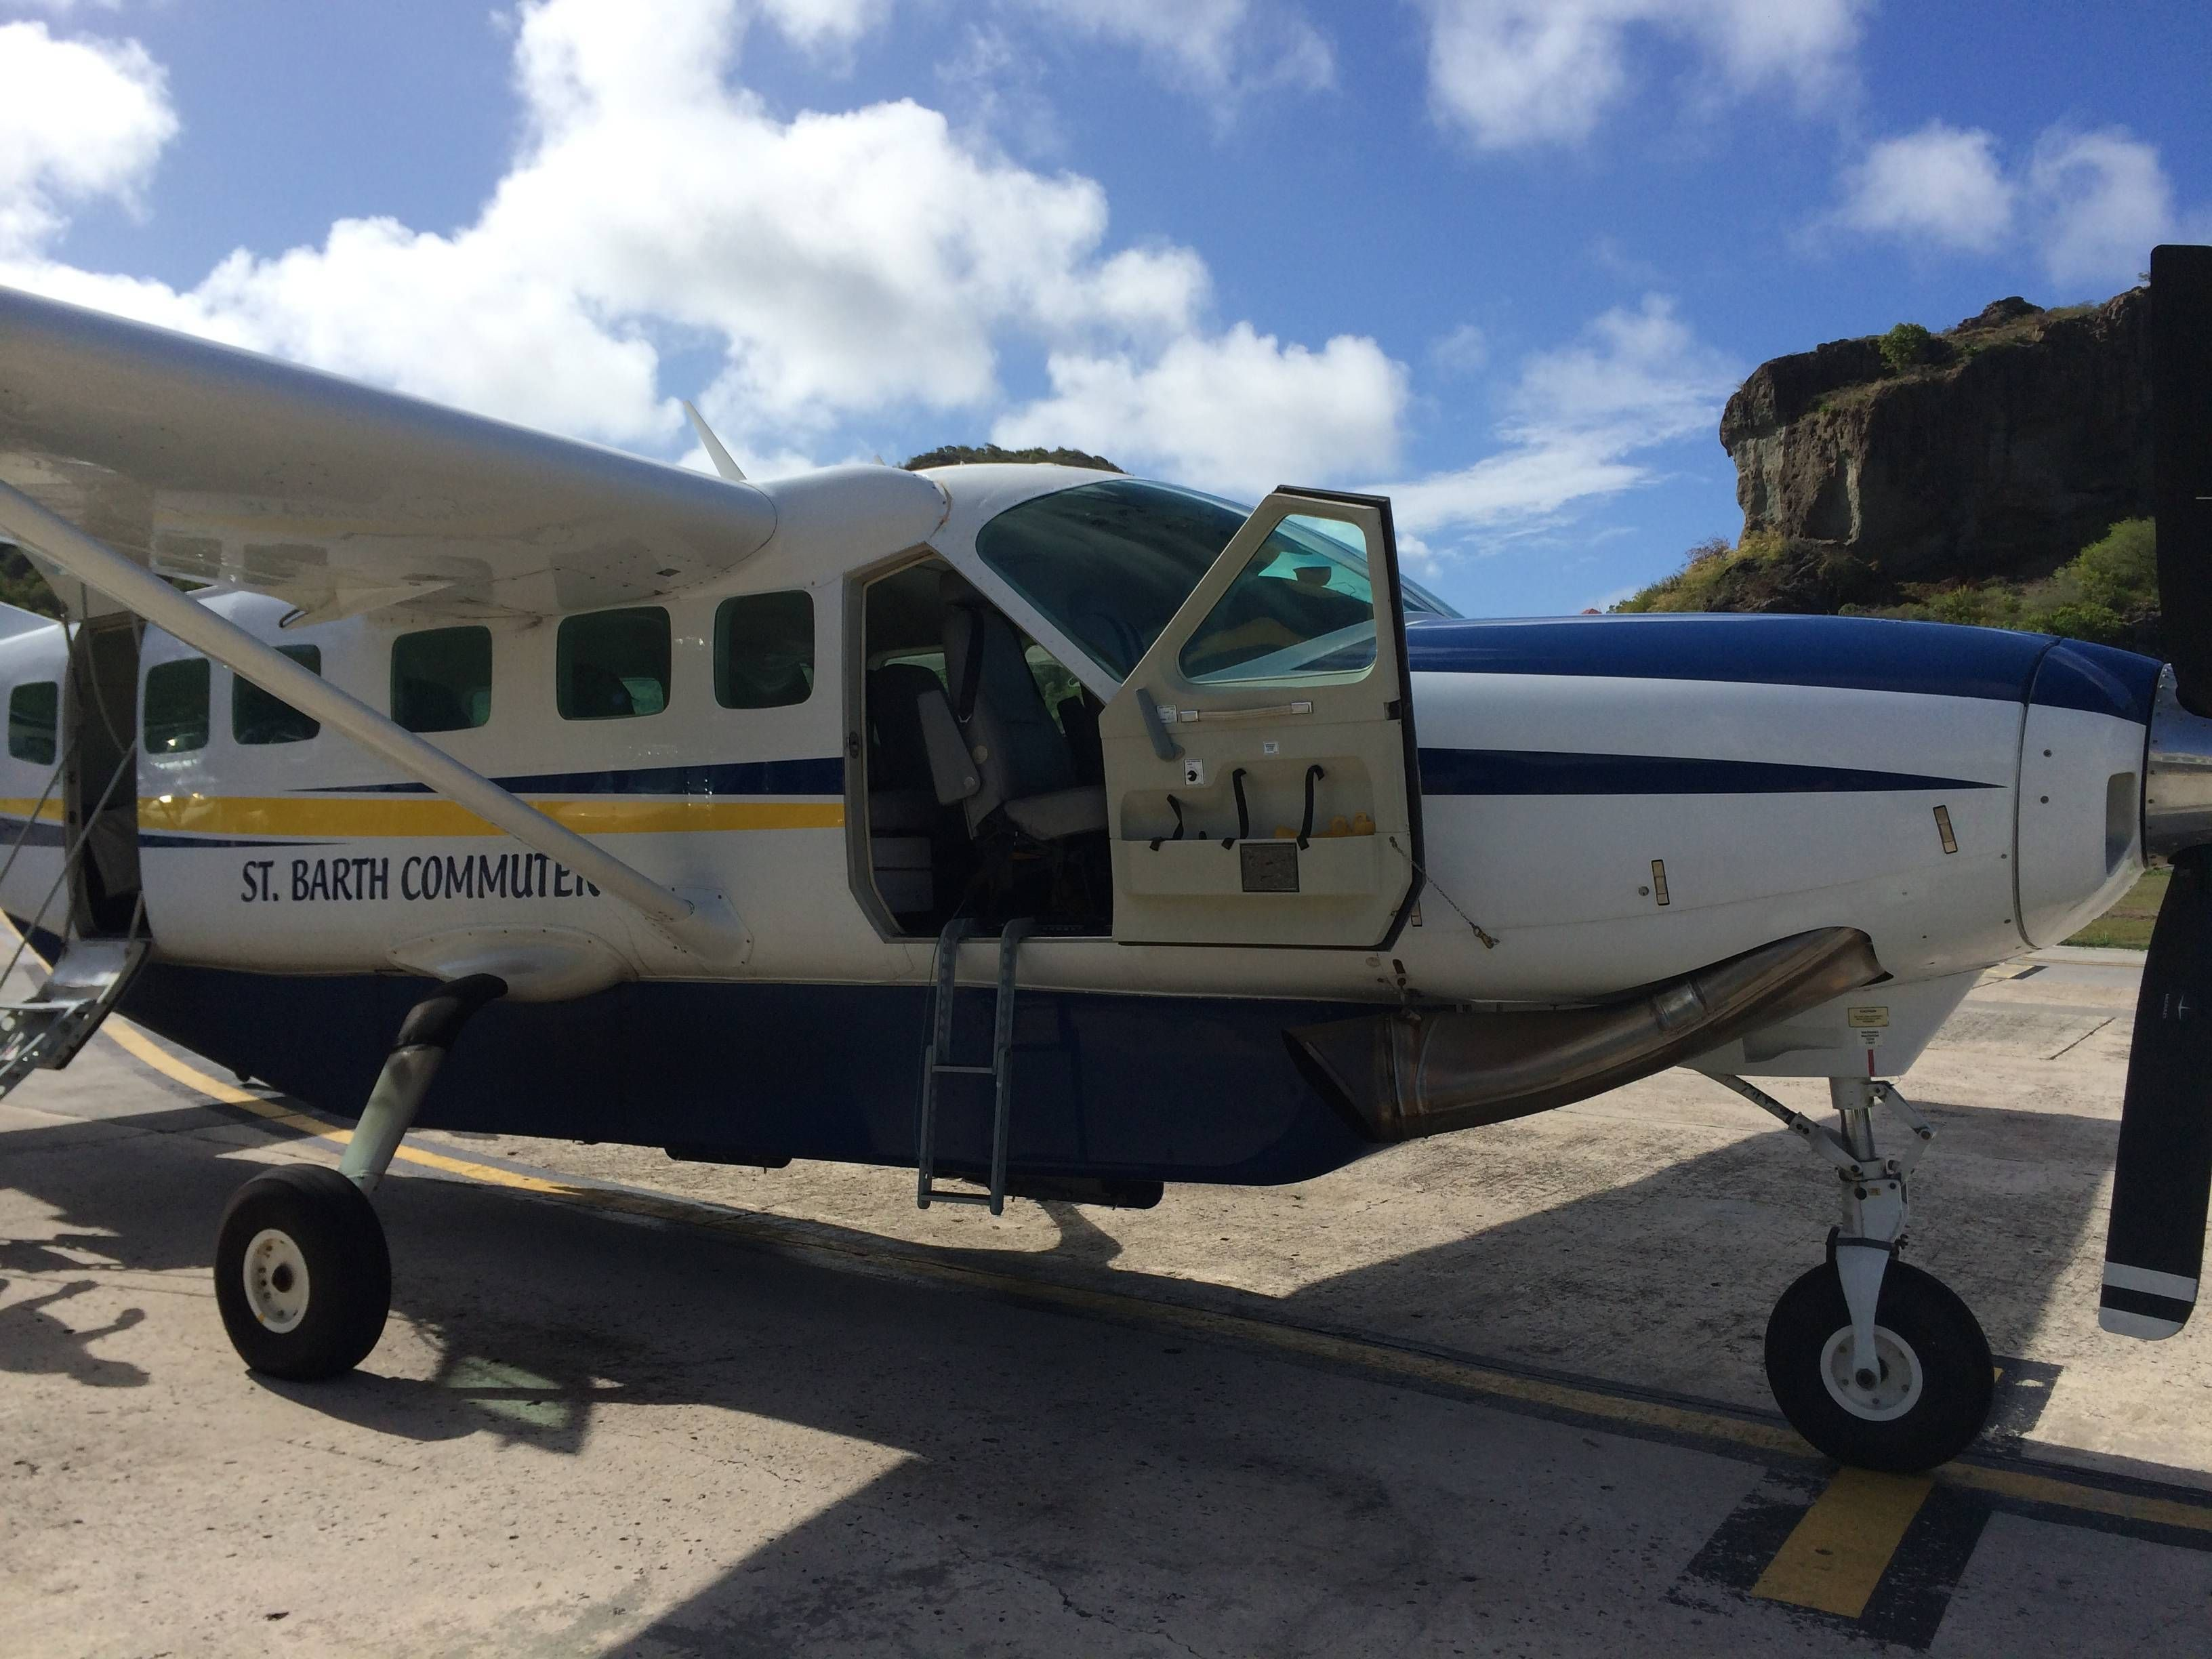 st barth commuter caravan